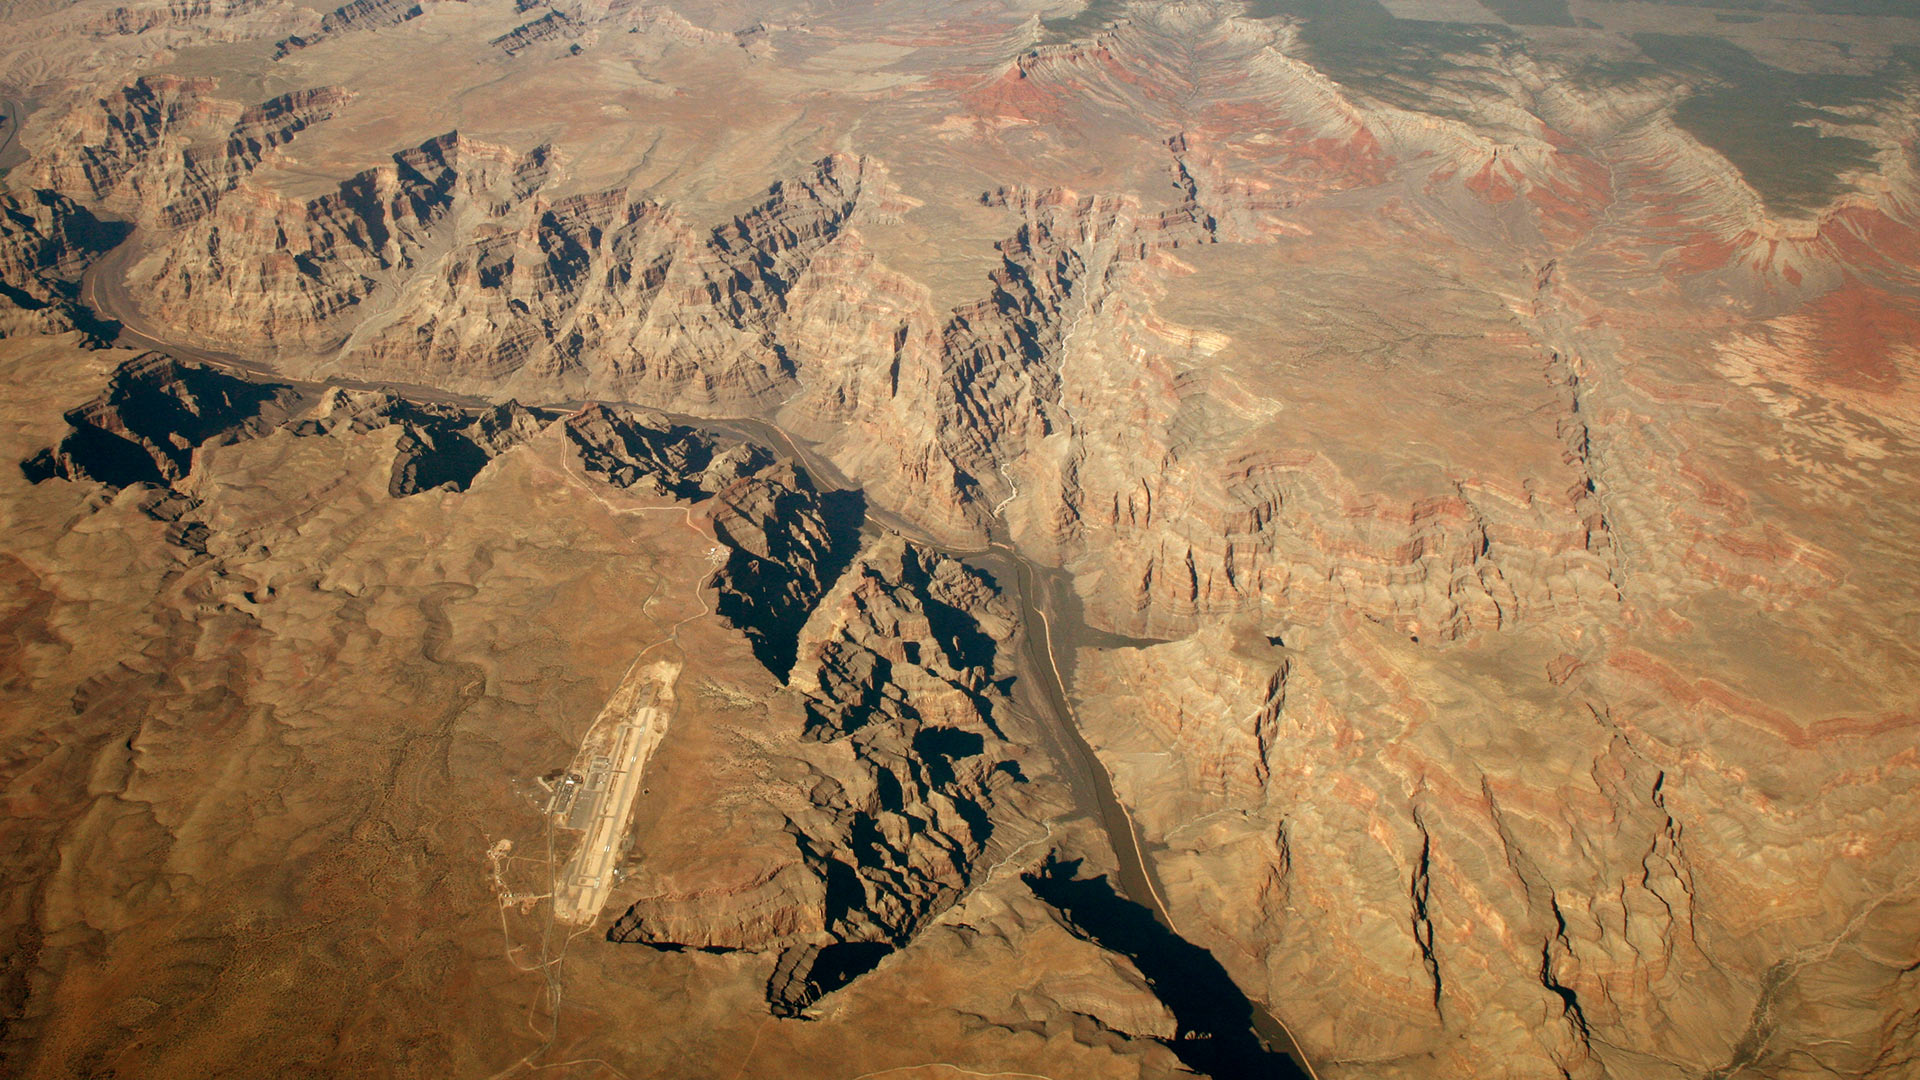 The airport runway at Grand Canyon West seen from an aerial photo.